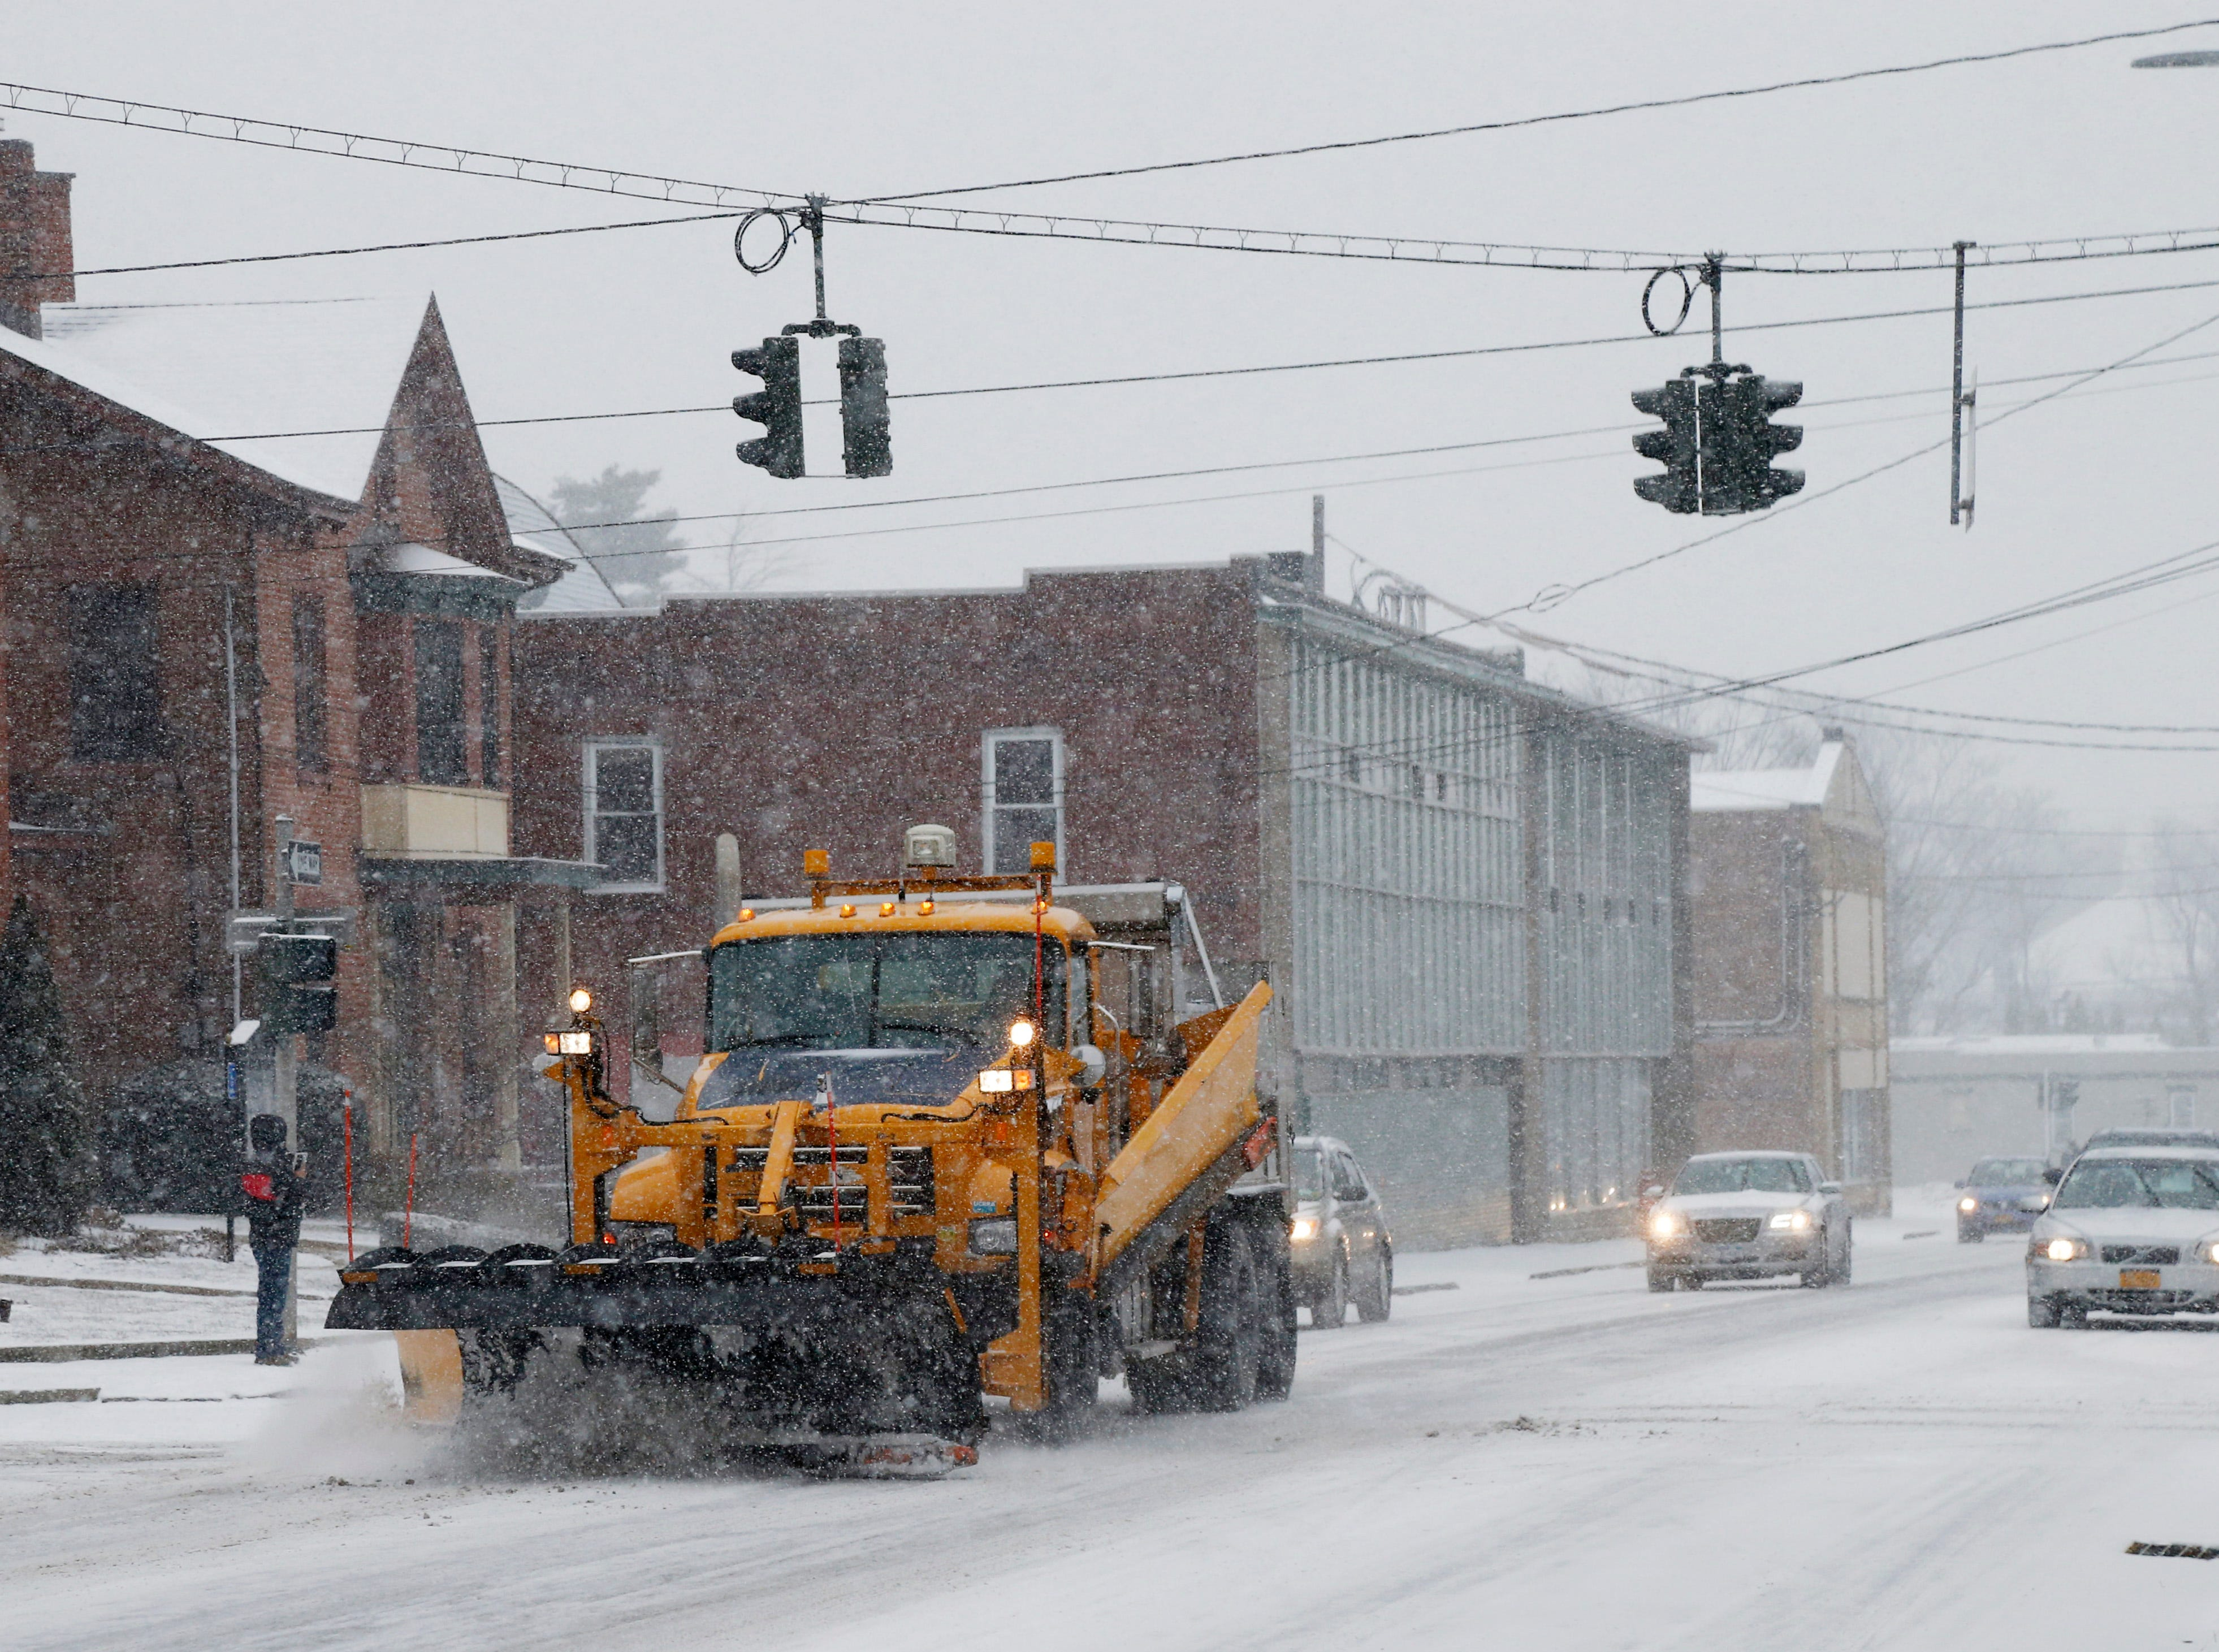 A NYSDOT plow works on the Westbound Arterial in the City of Poughkeepsie on February 12, 2019.